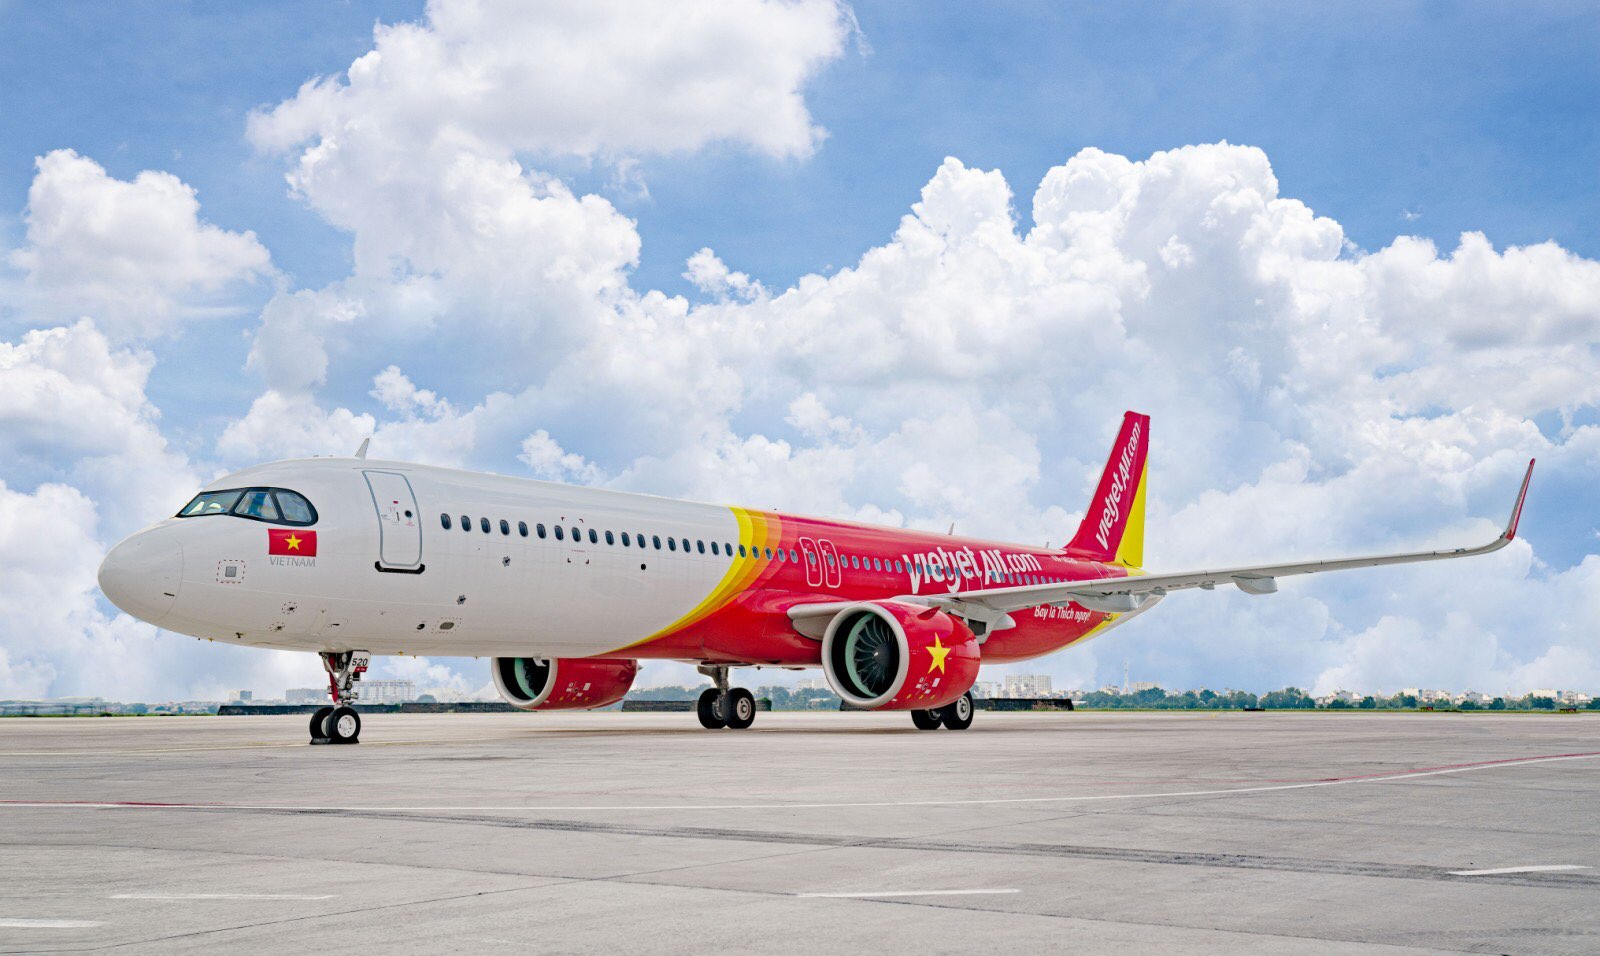 Vietjet wins 'Best Ultra Low-Cost Airline' award for 3rd successive year